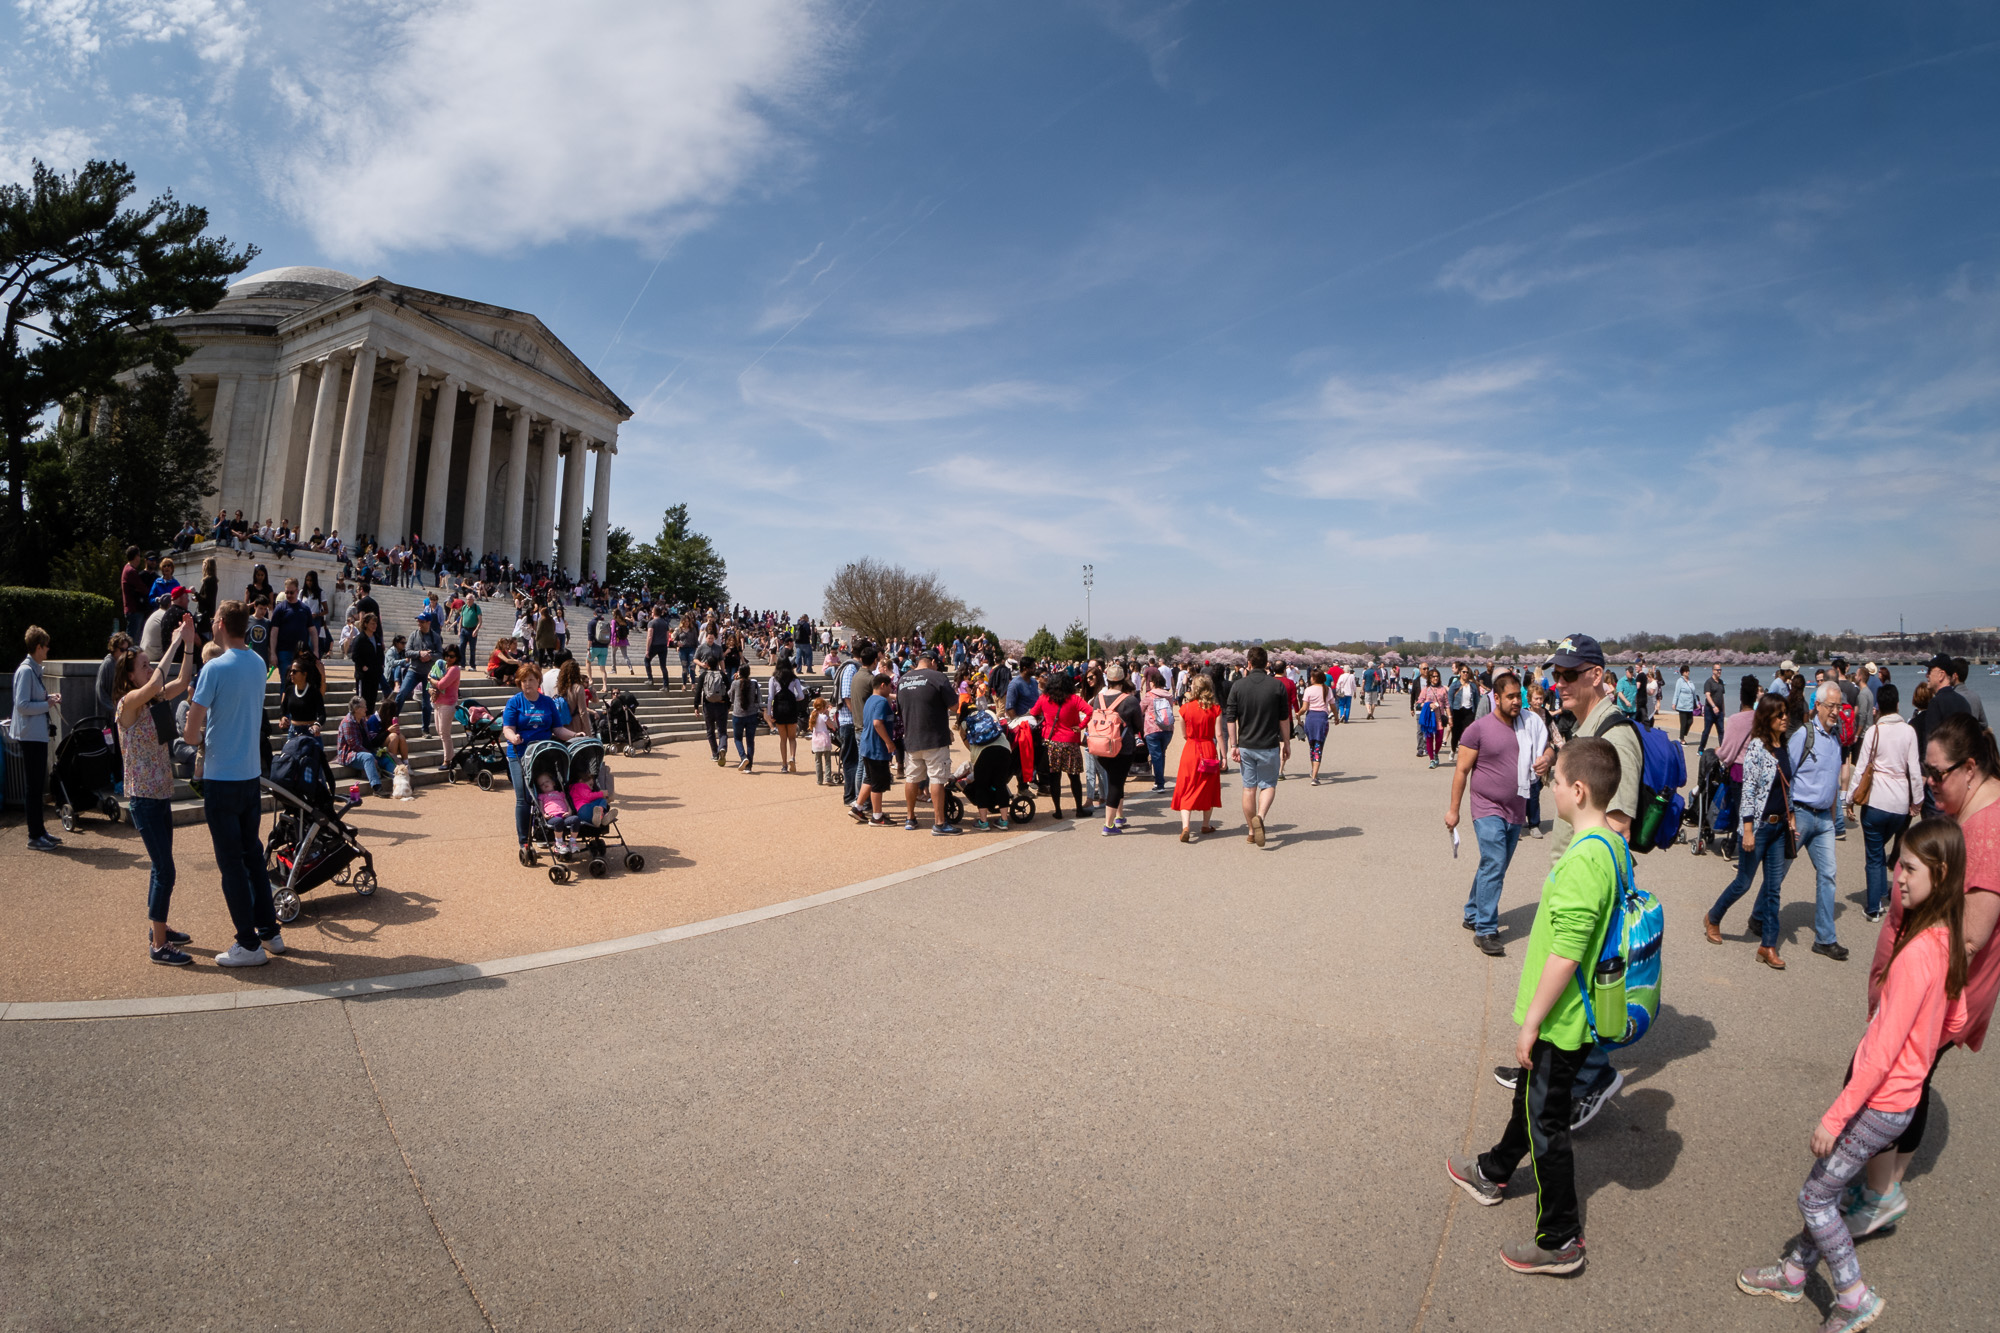 Jefferson Memorial Cherry Blossom Crowds